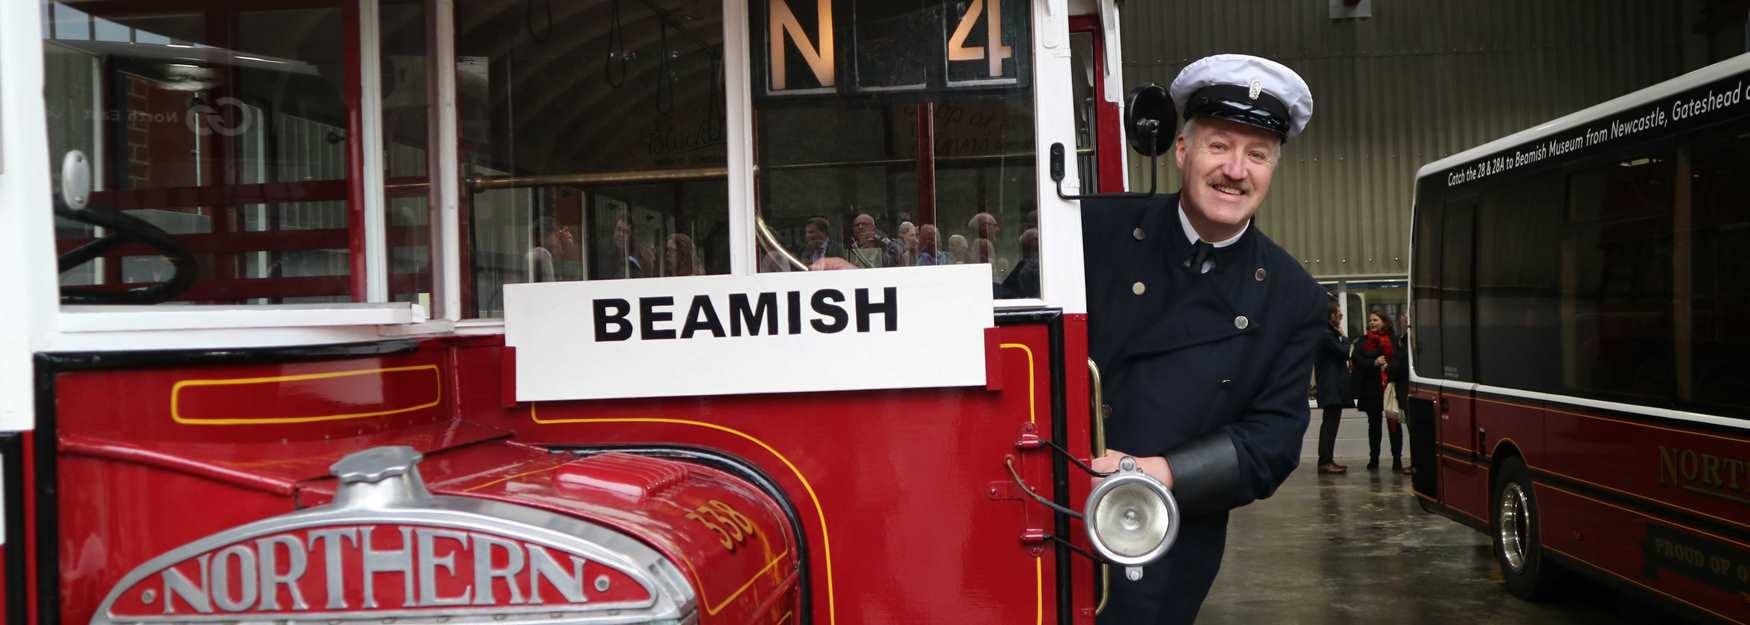 Bus Depo at Beamish